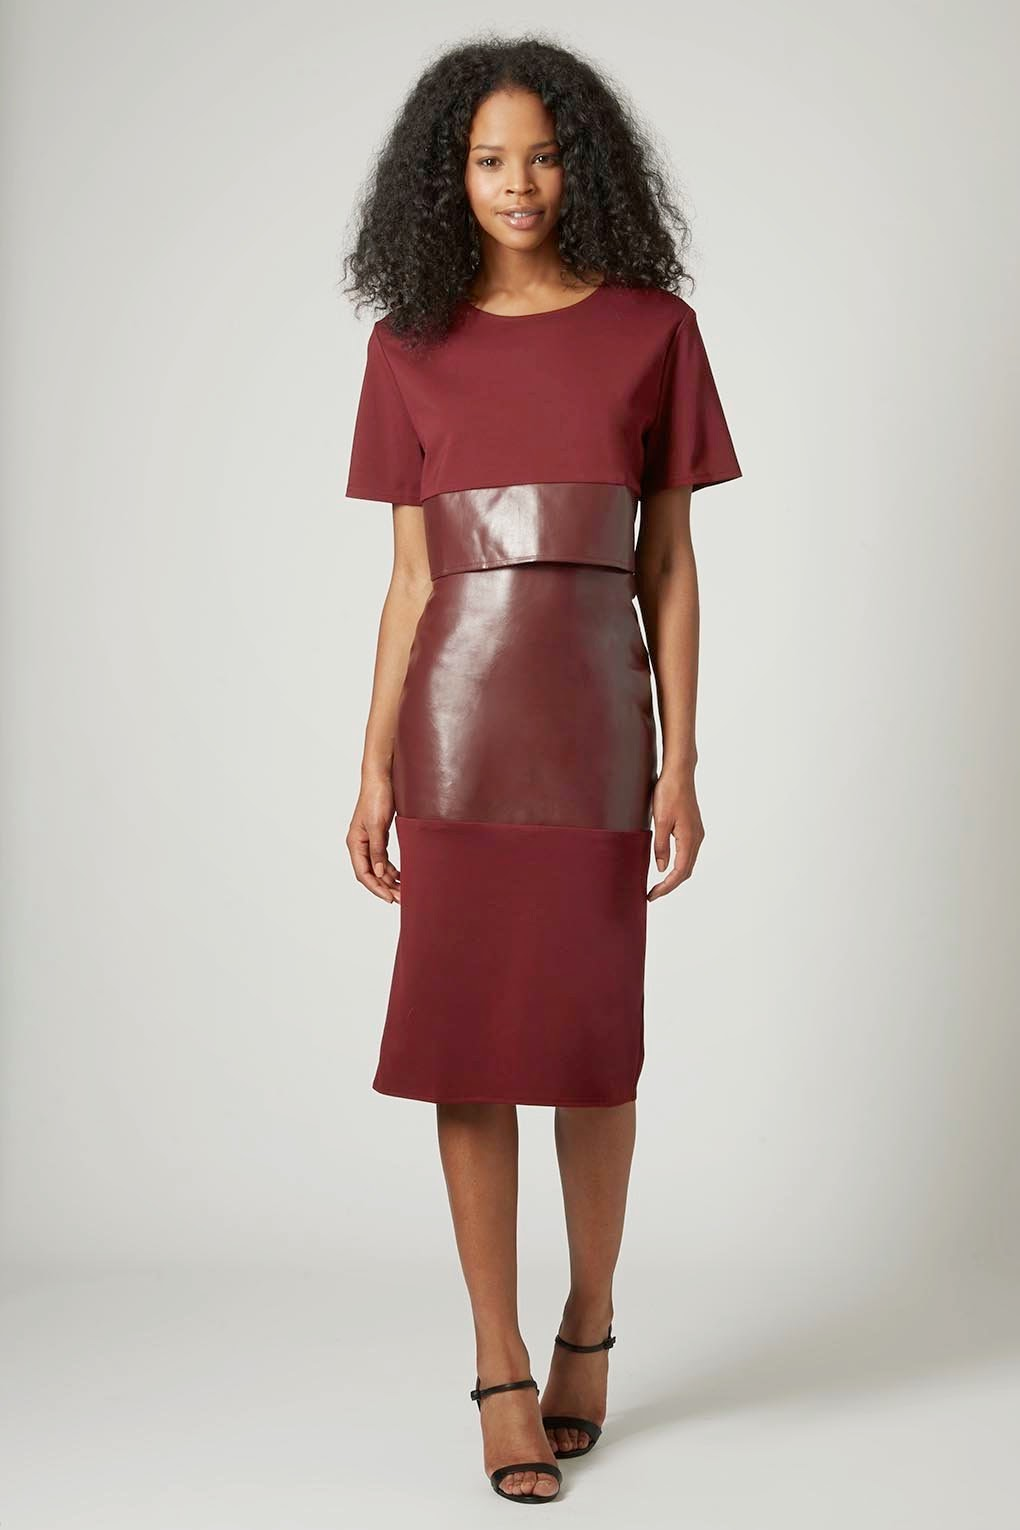 burgundy fake leather skirt, matching top and skirt topshop,